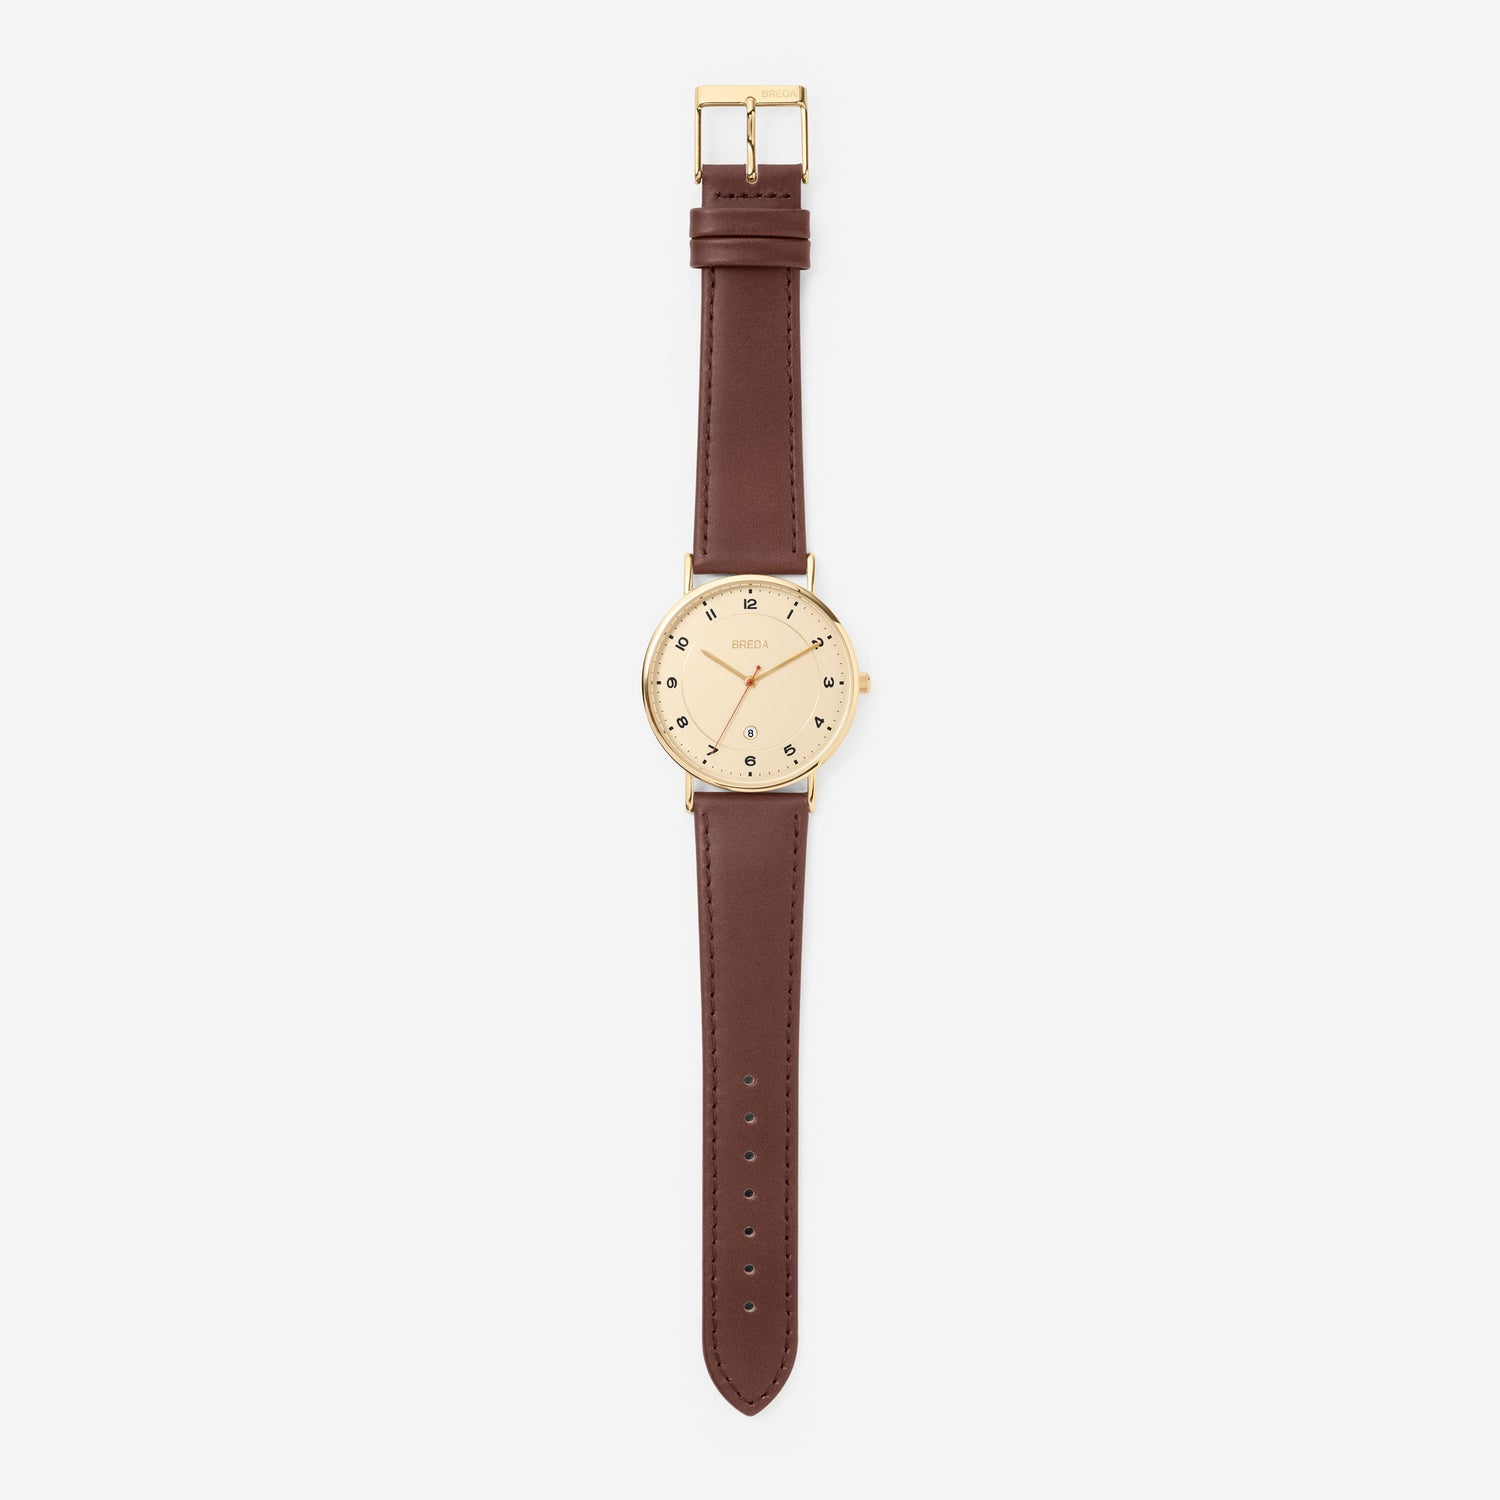 breda-pei-1739c-gold-brown-leather-watch-long